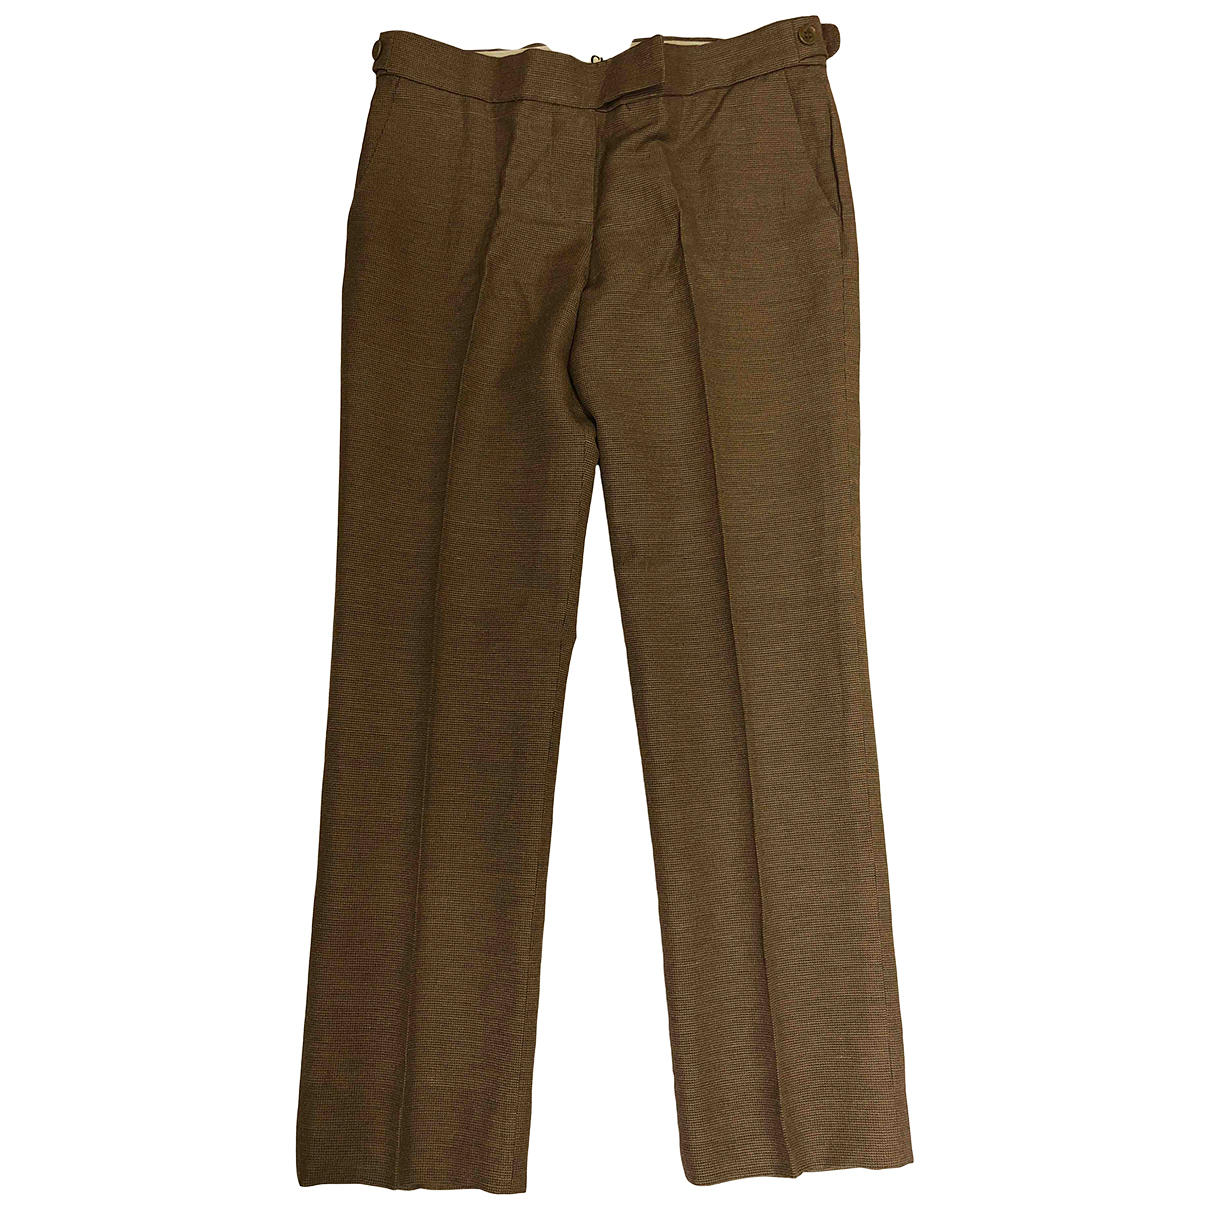 Chloé N Brown Trousers for Women 40 FR